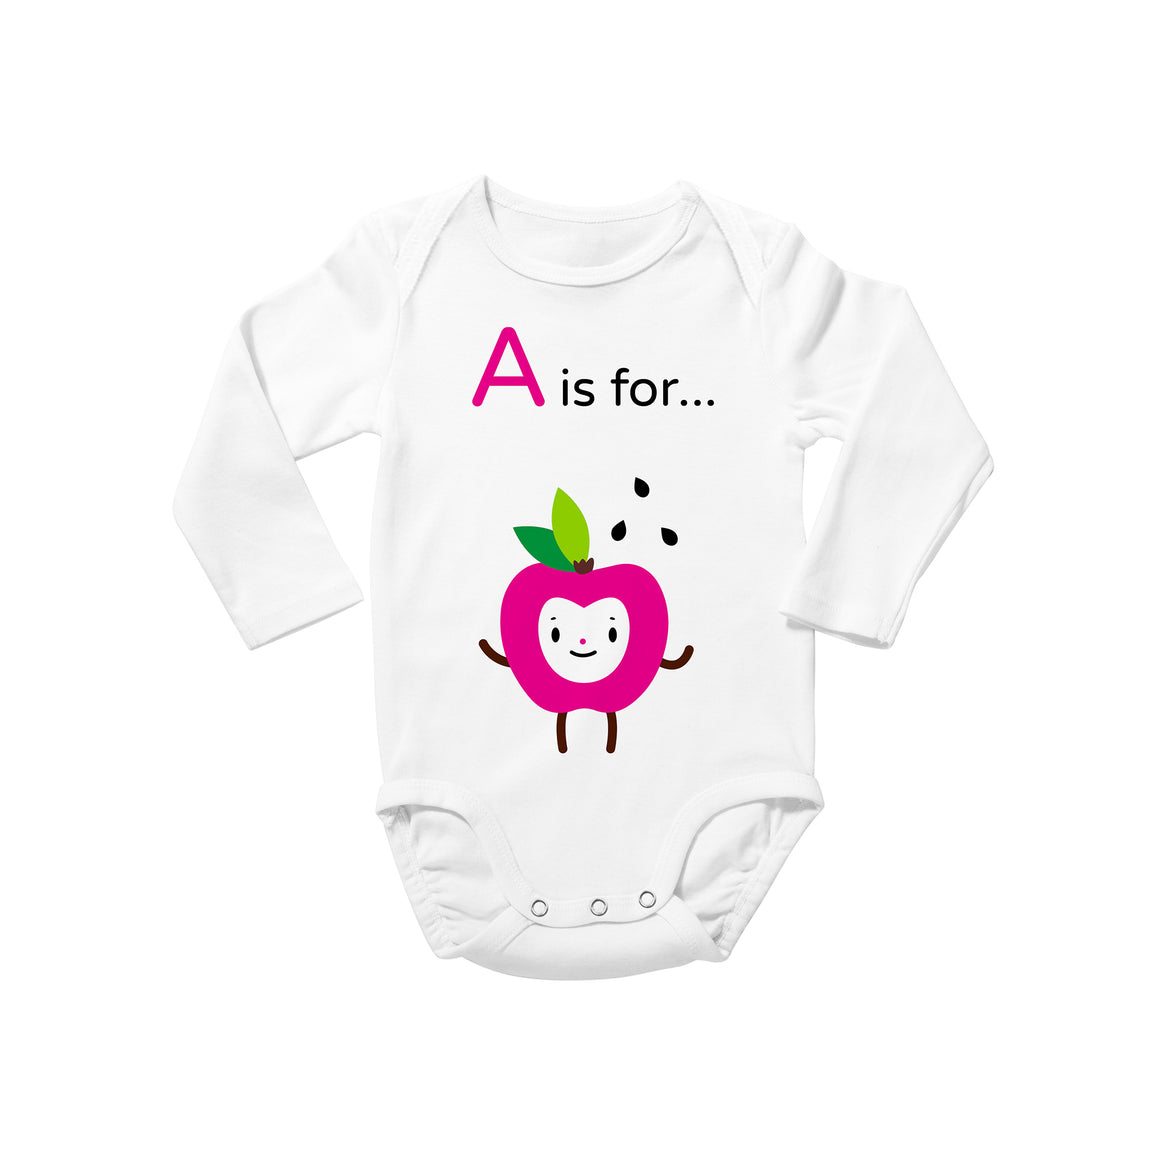 """A is for Apple"" fuchsia apple happy face with green leaves and black apple seeds character illustration on white long sleeve onesie bodysuit, baby shower gift"